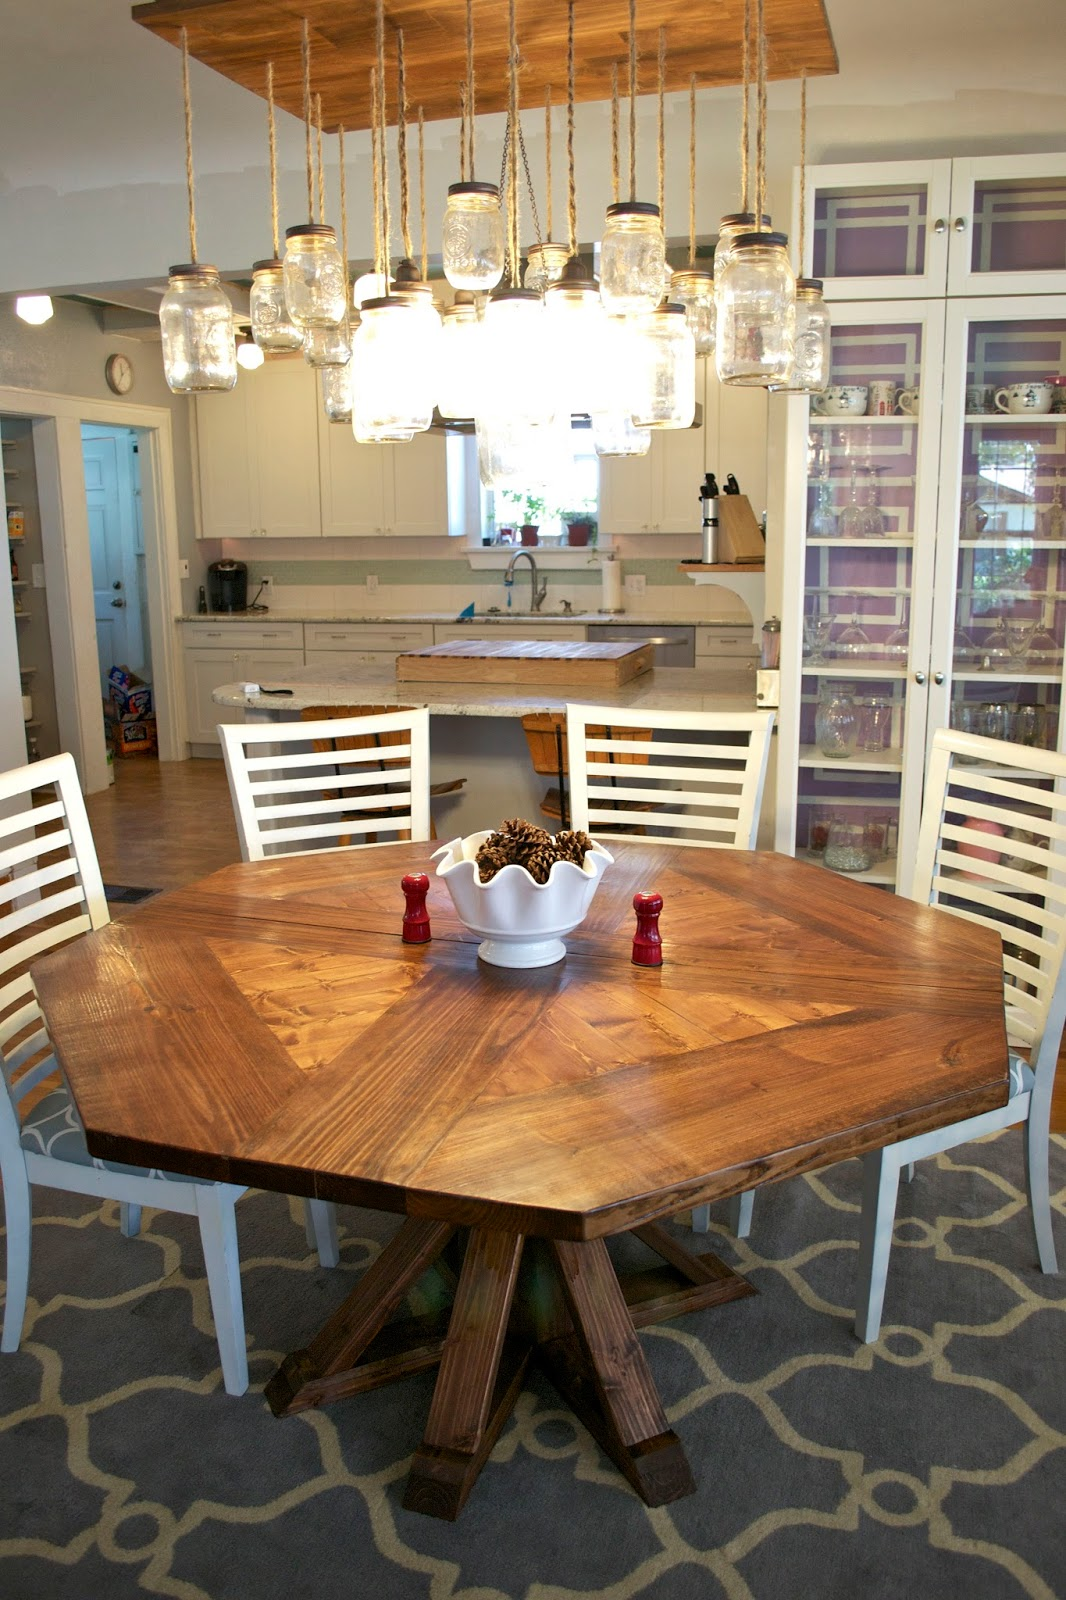 Epic Restoration Hardware DIY Dining Table